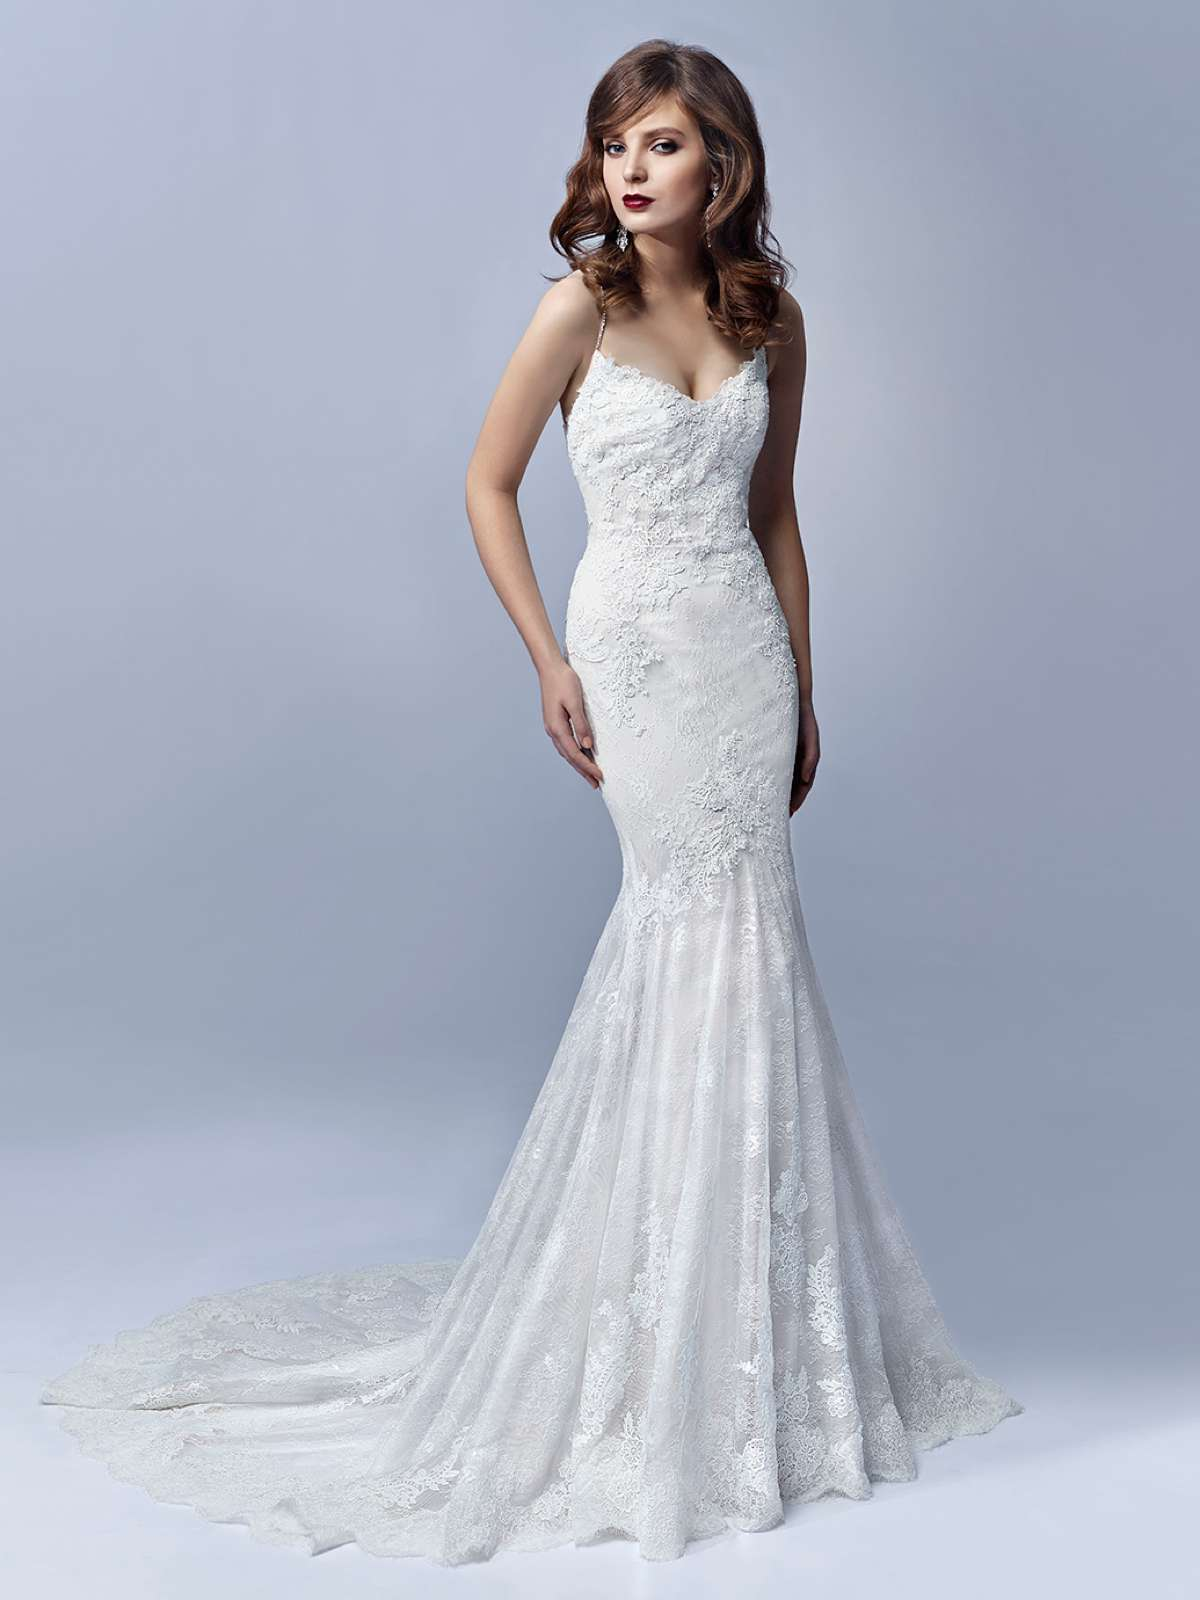 Sneak preview 2017 enzoani collections love our wedding